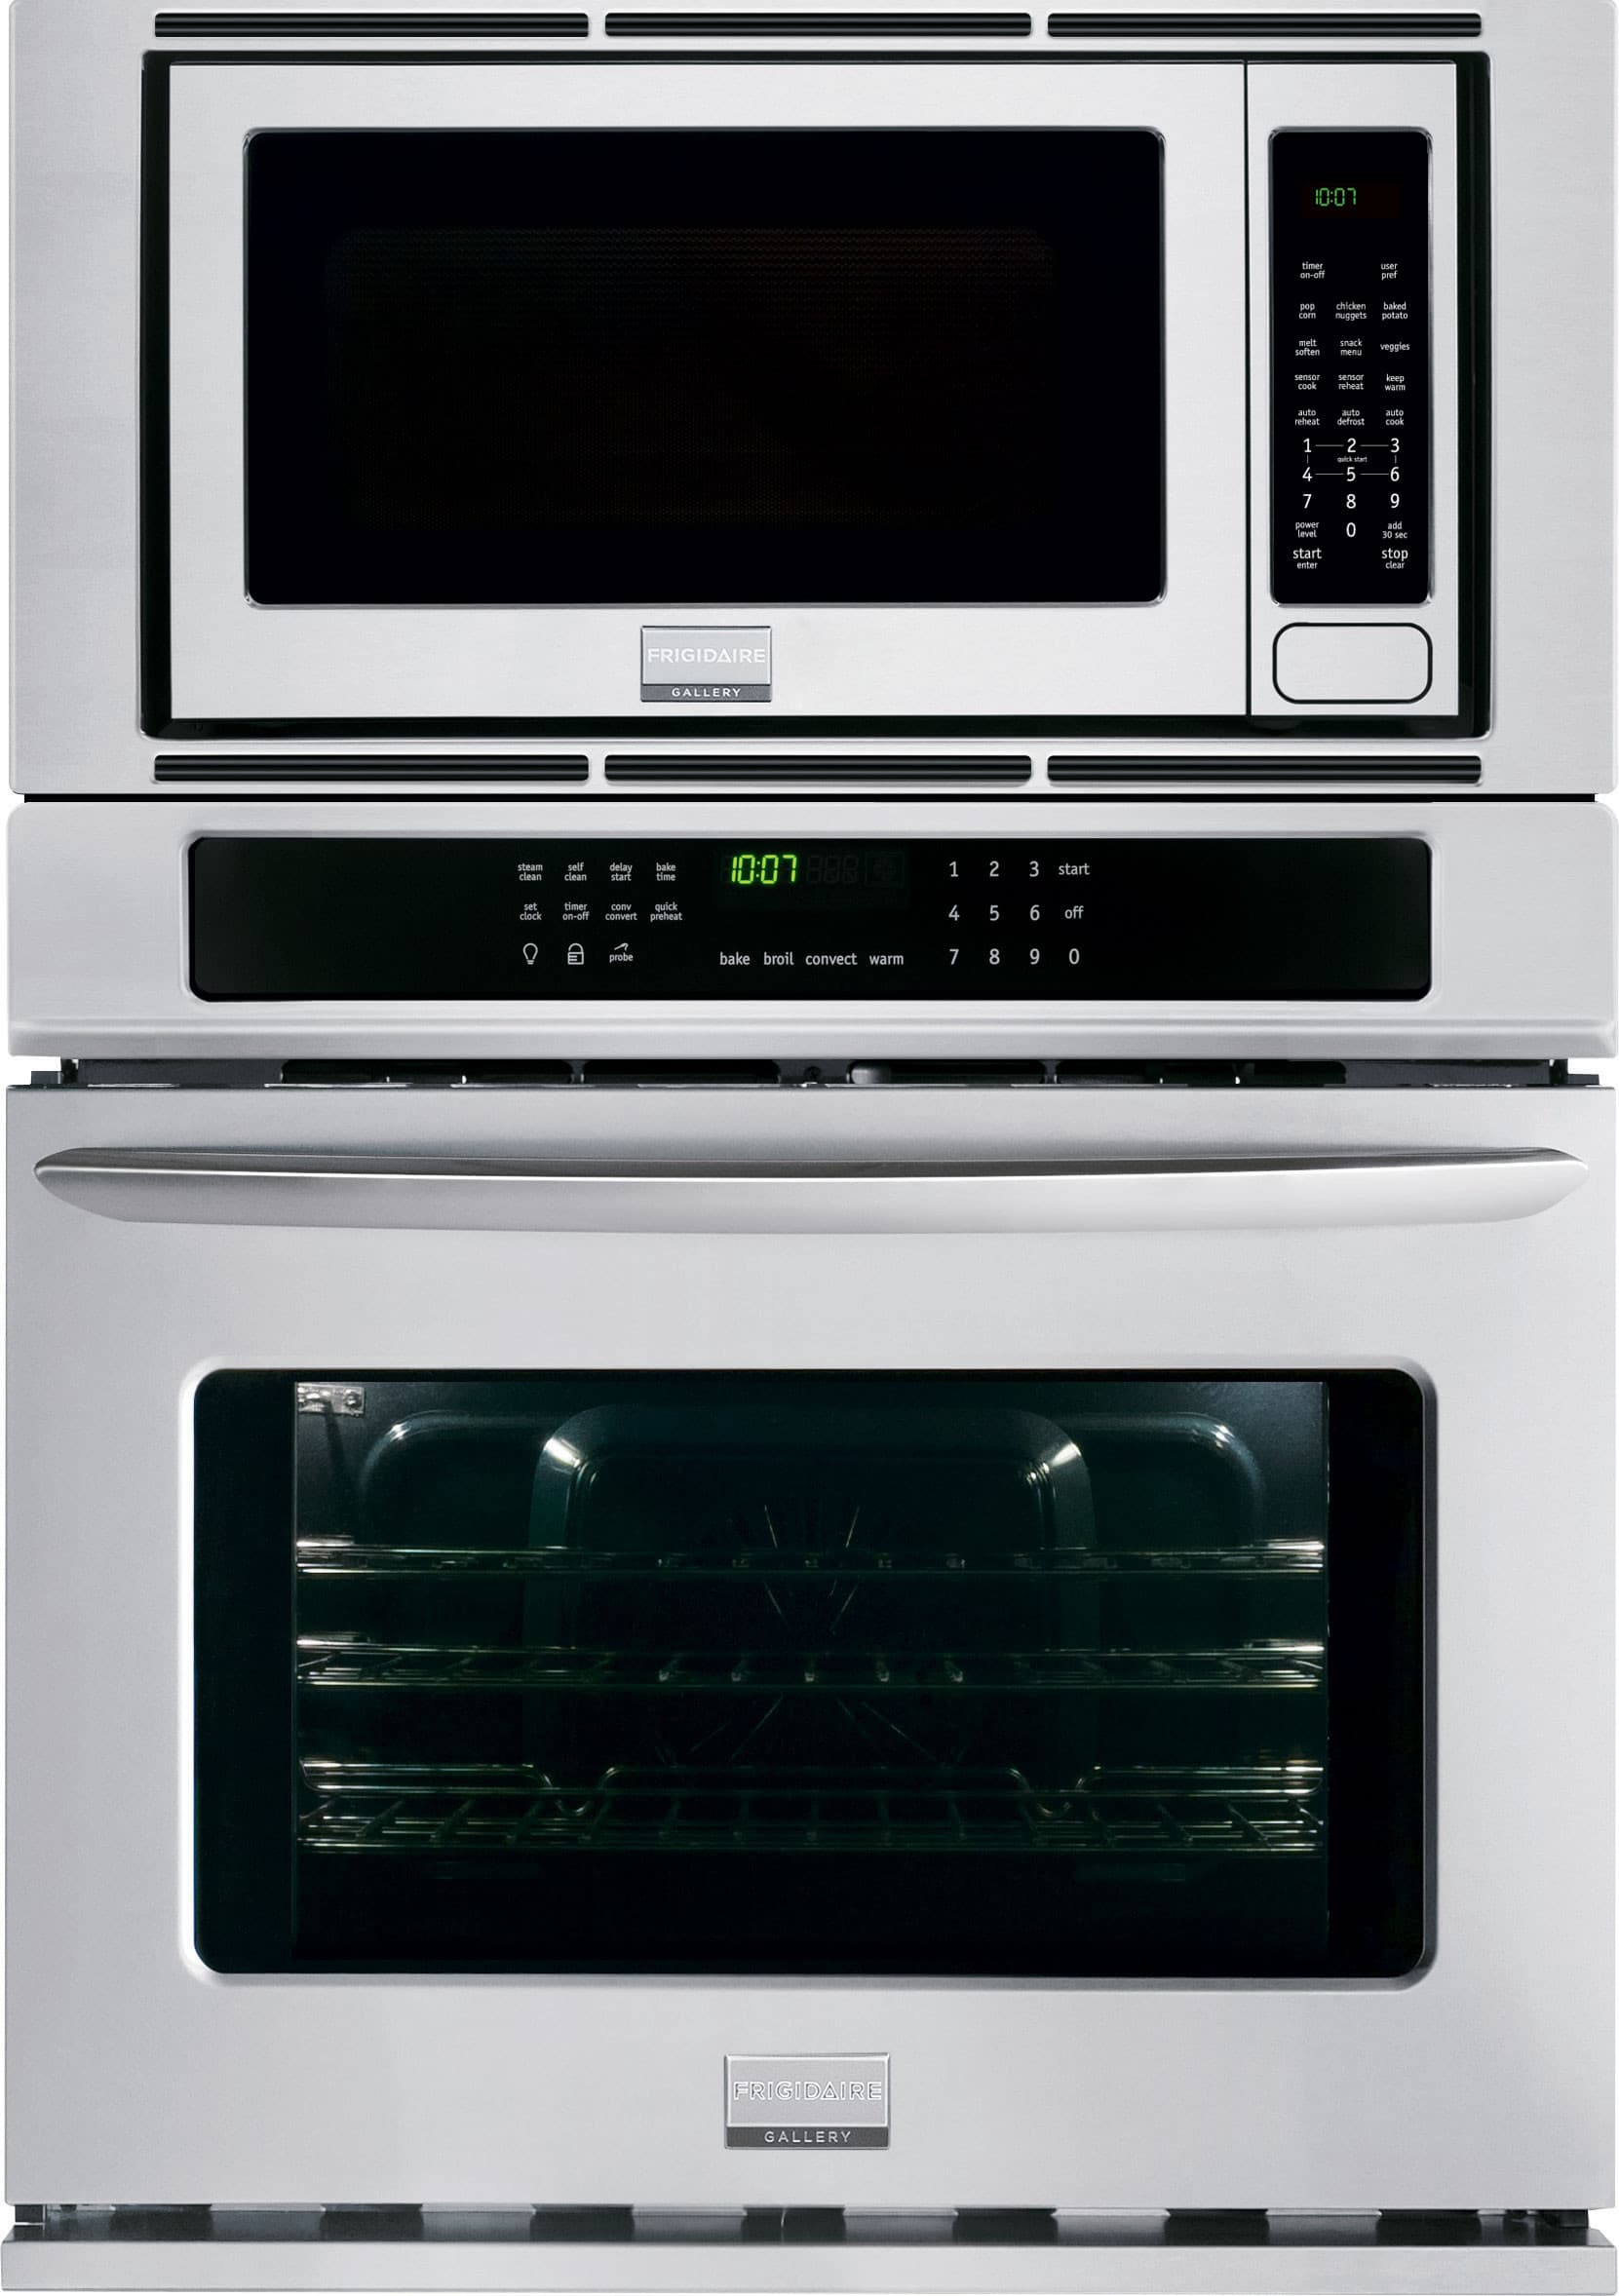 Frigidaire Fgmc3065pf 30 Inch Combination Wall Oven With 4 6 Cu Ft True Convection 2 0 Microwave Steam Clean Quick Preheat